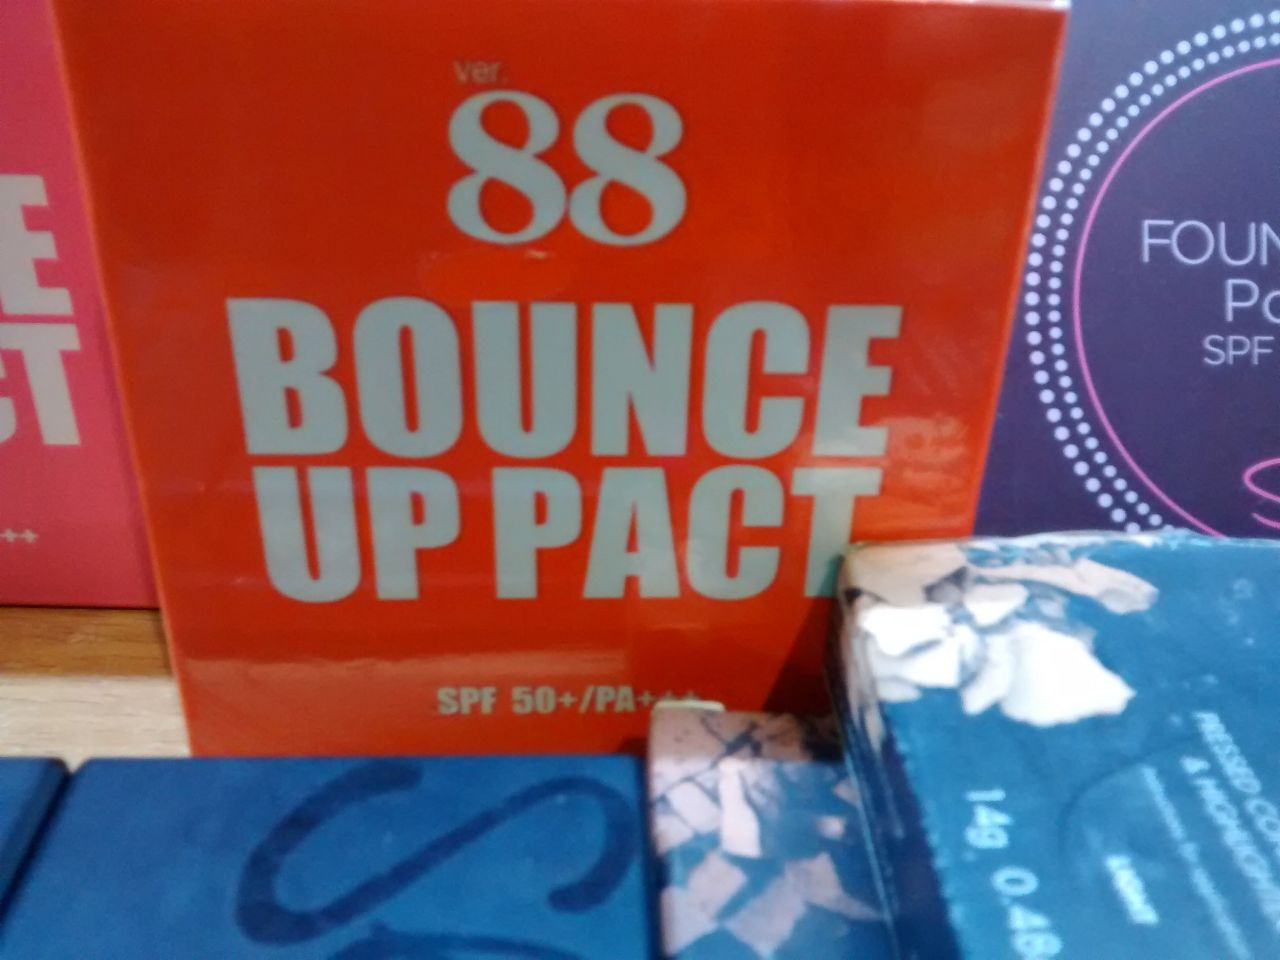 88 Bounce up Pact